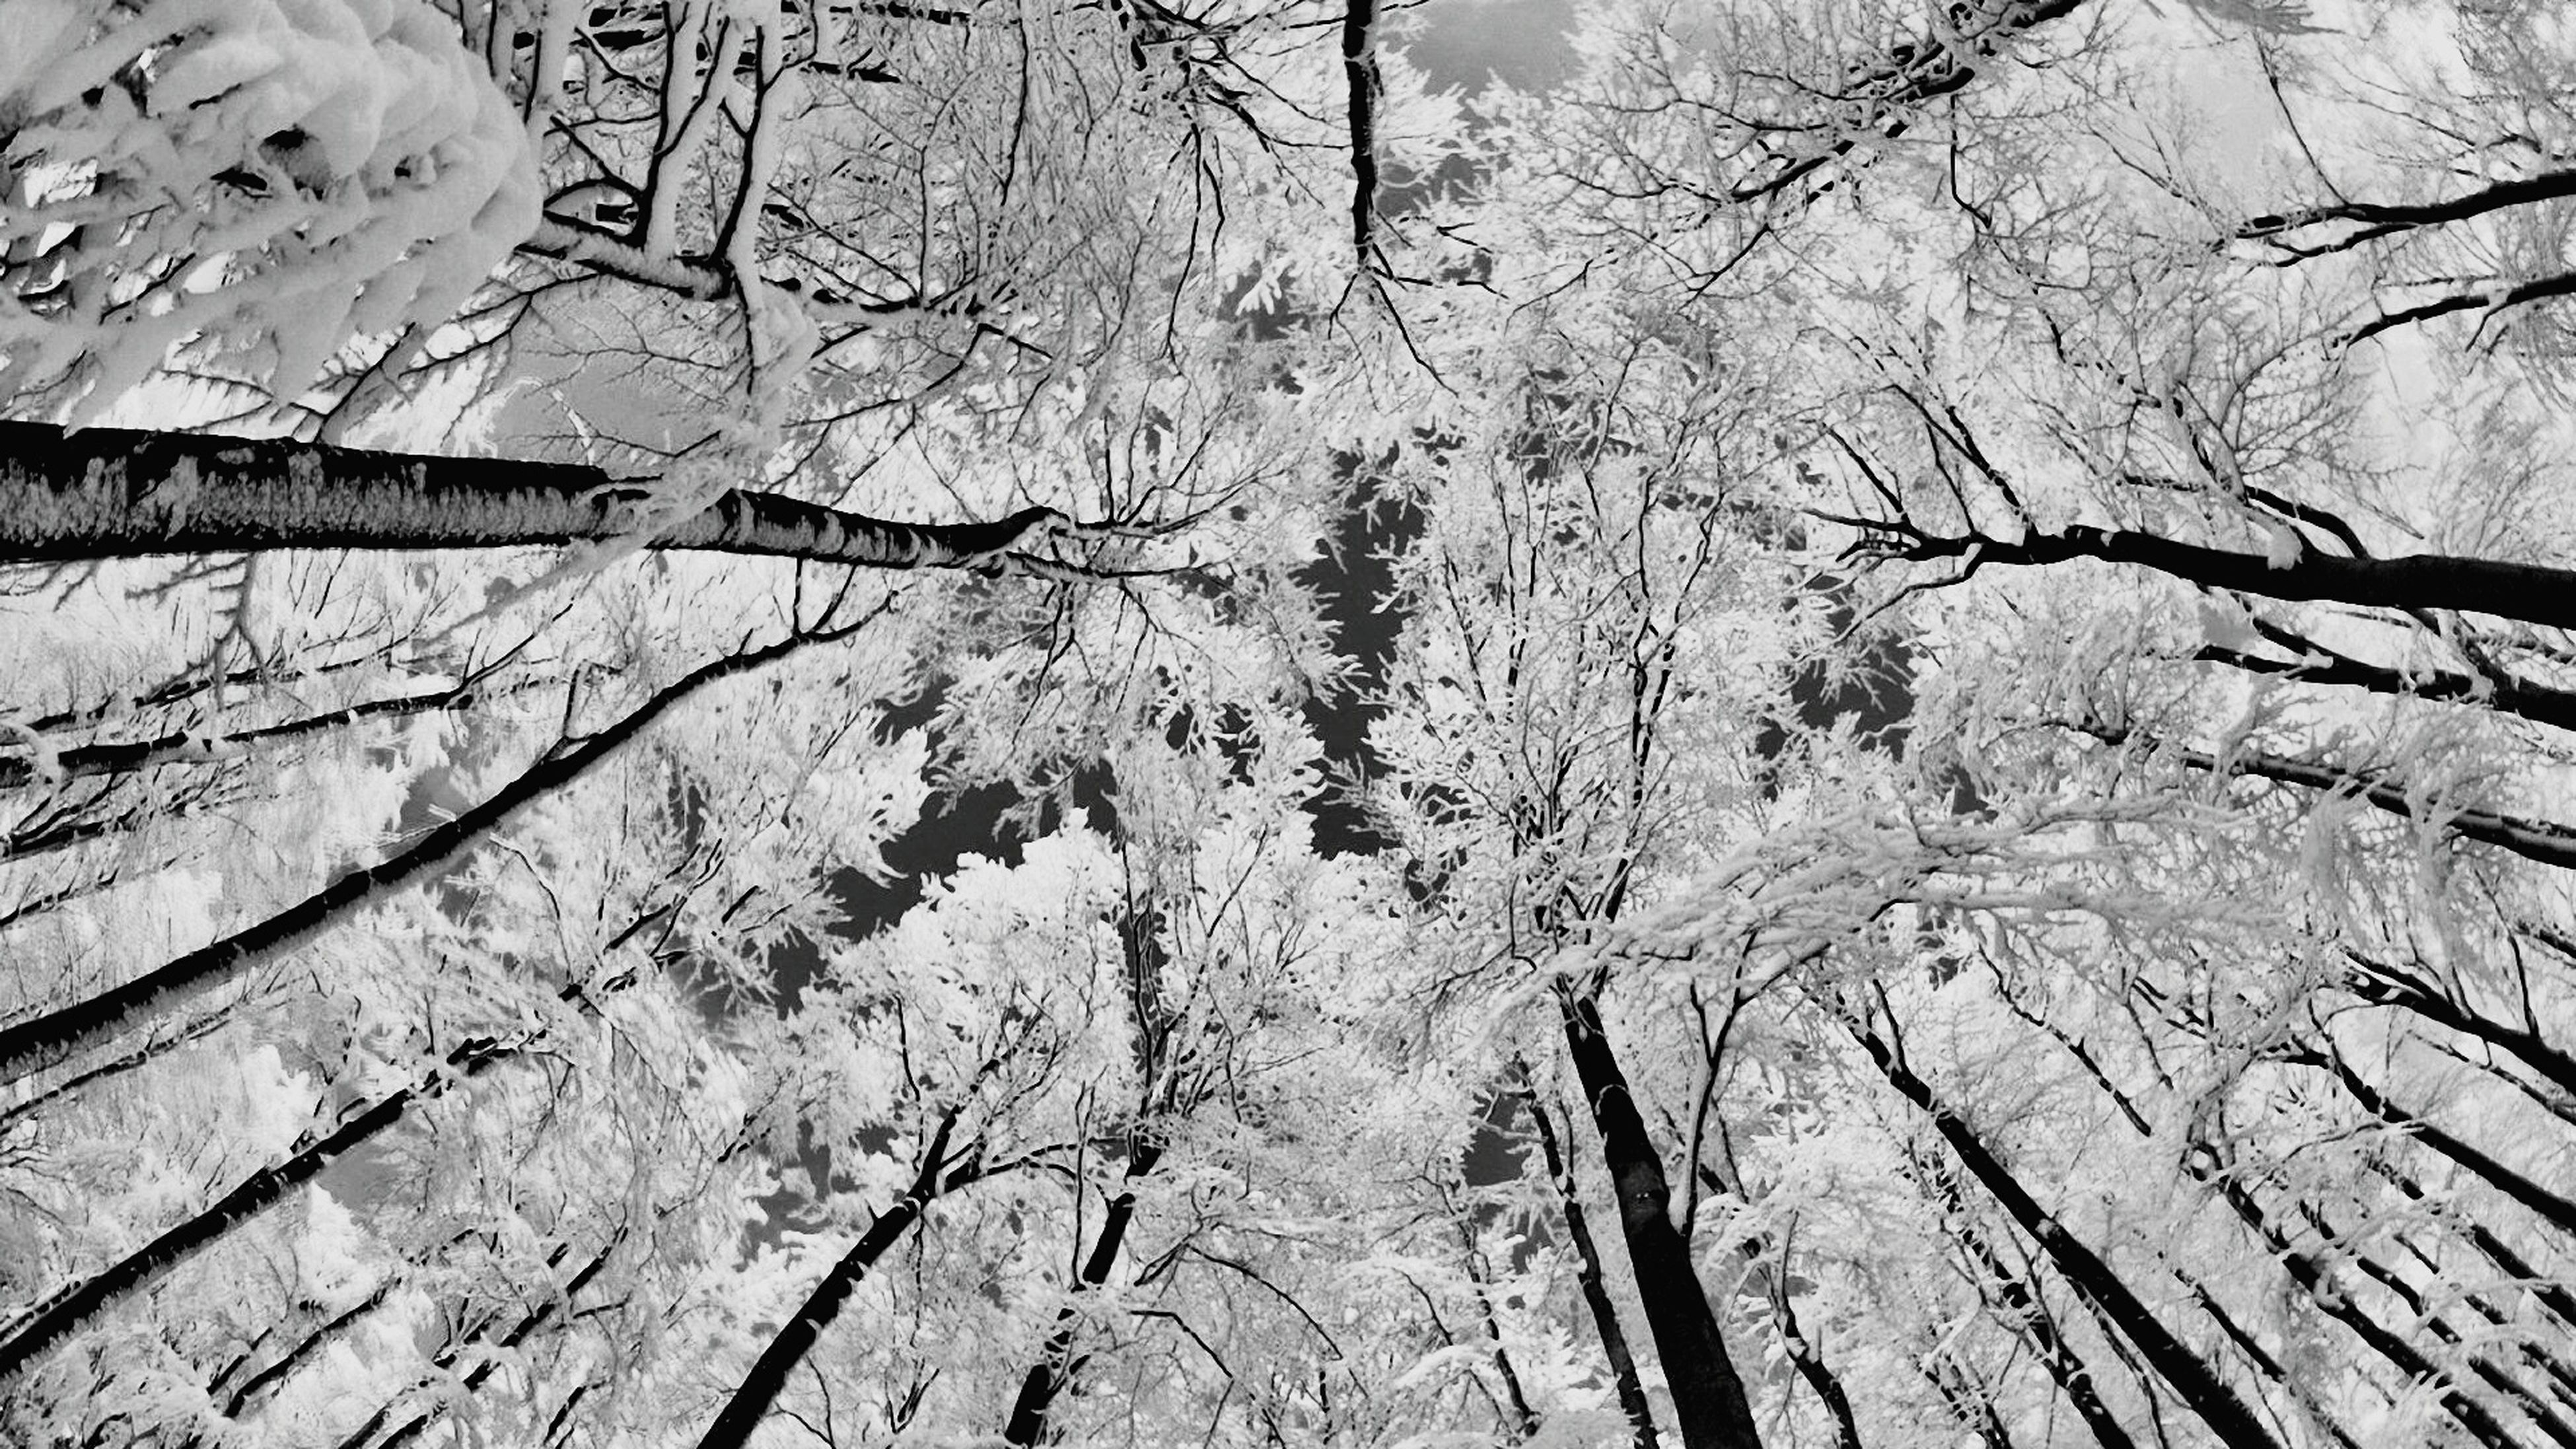 textured, backgrounds, full frame, close-up, winter, pattern, snow, high angle view, nature, rough, wood - material, cracked, day, cold temperature, outdoors, season, natural pattern, no people, tranquility, bare tree